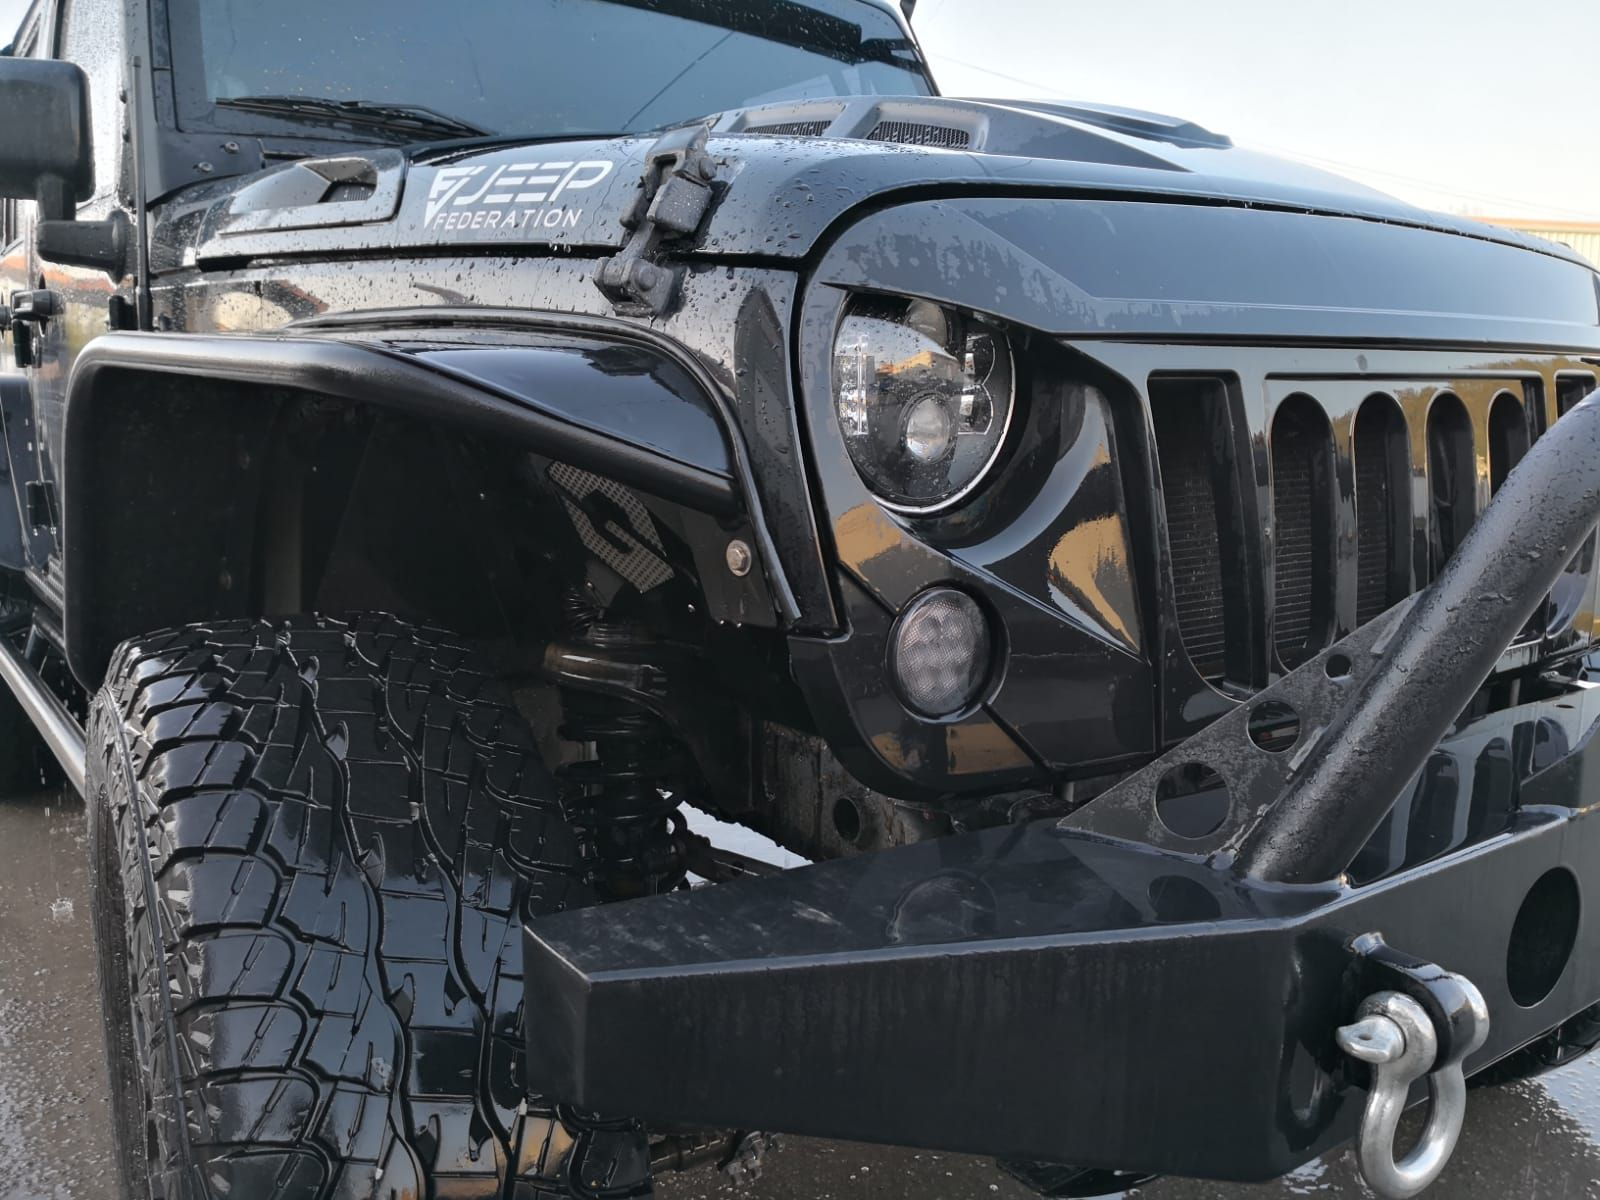 Jeep Federation Fenders For Jeep Wrangler Jk Jku Jeep Wrangler